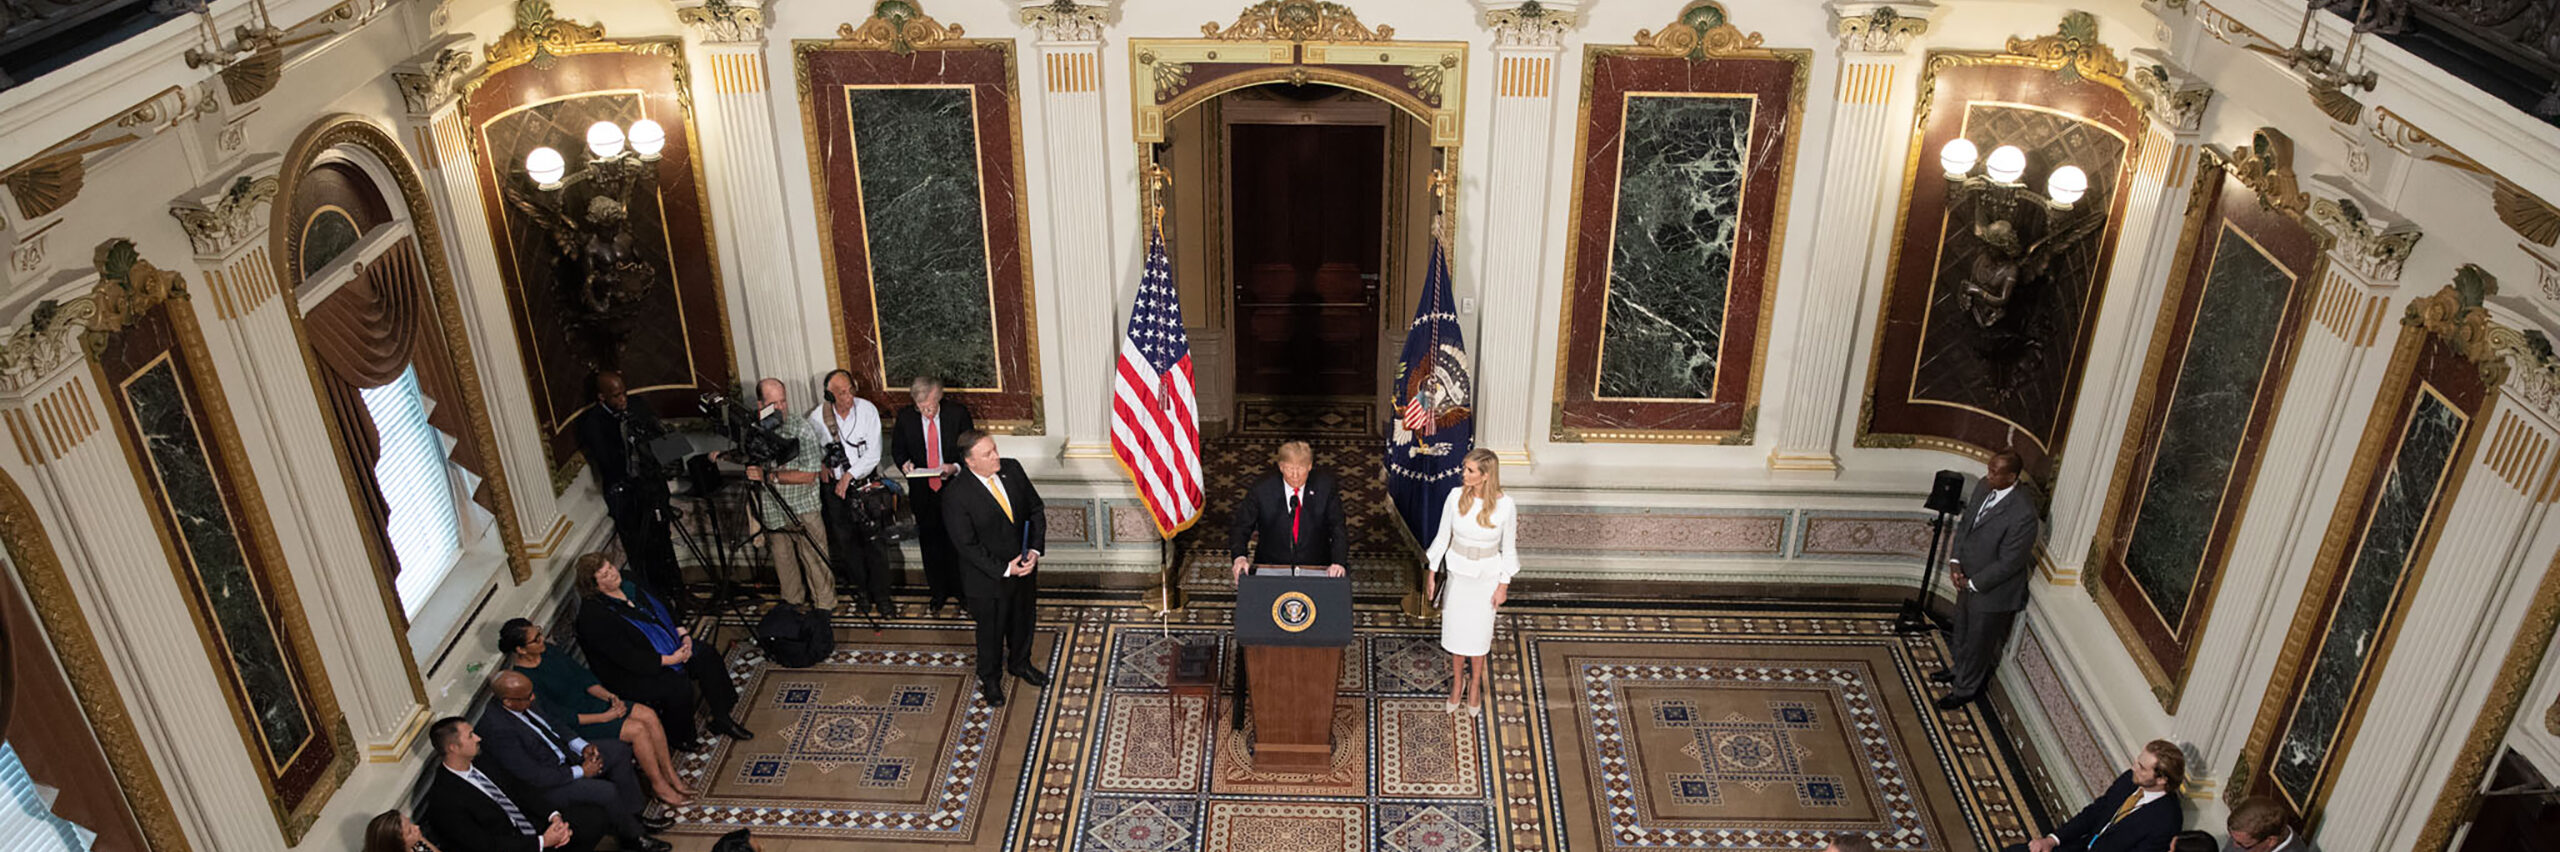 President Trump, Advisor to the President Ivanka Trump, and Secretary of State Mike Pompeo participate in a meeting of the President's Interagency Task Force to Monitor and Combat Trafficking Persons (PITF), October 11, 2018 (Photo Credit – Official White House photo by Joyce N. Boghosian)